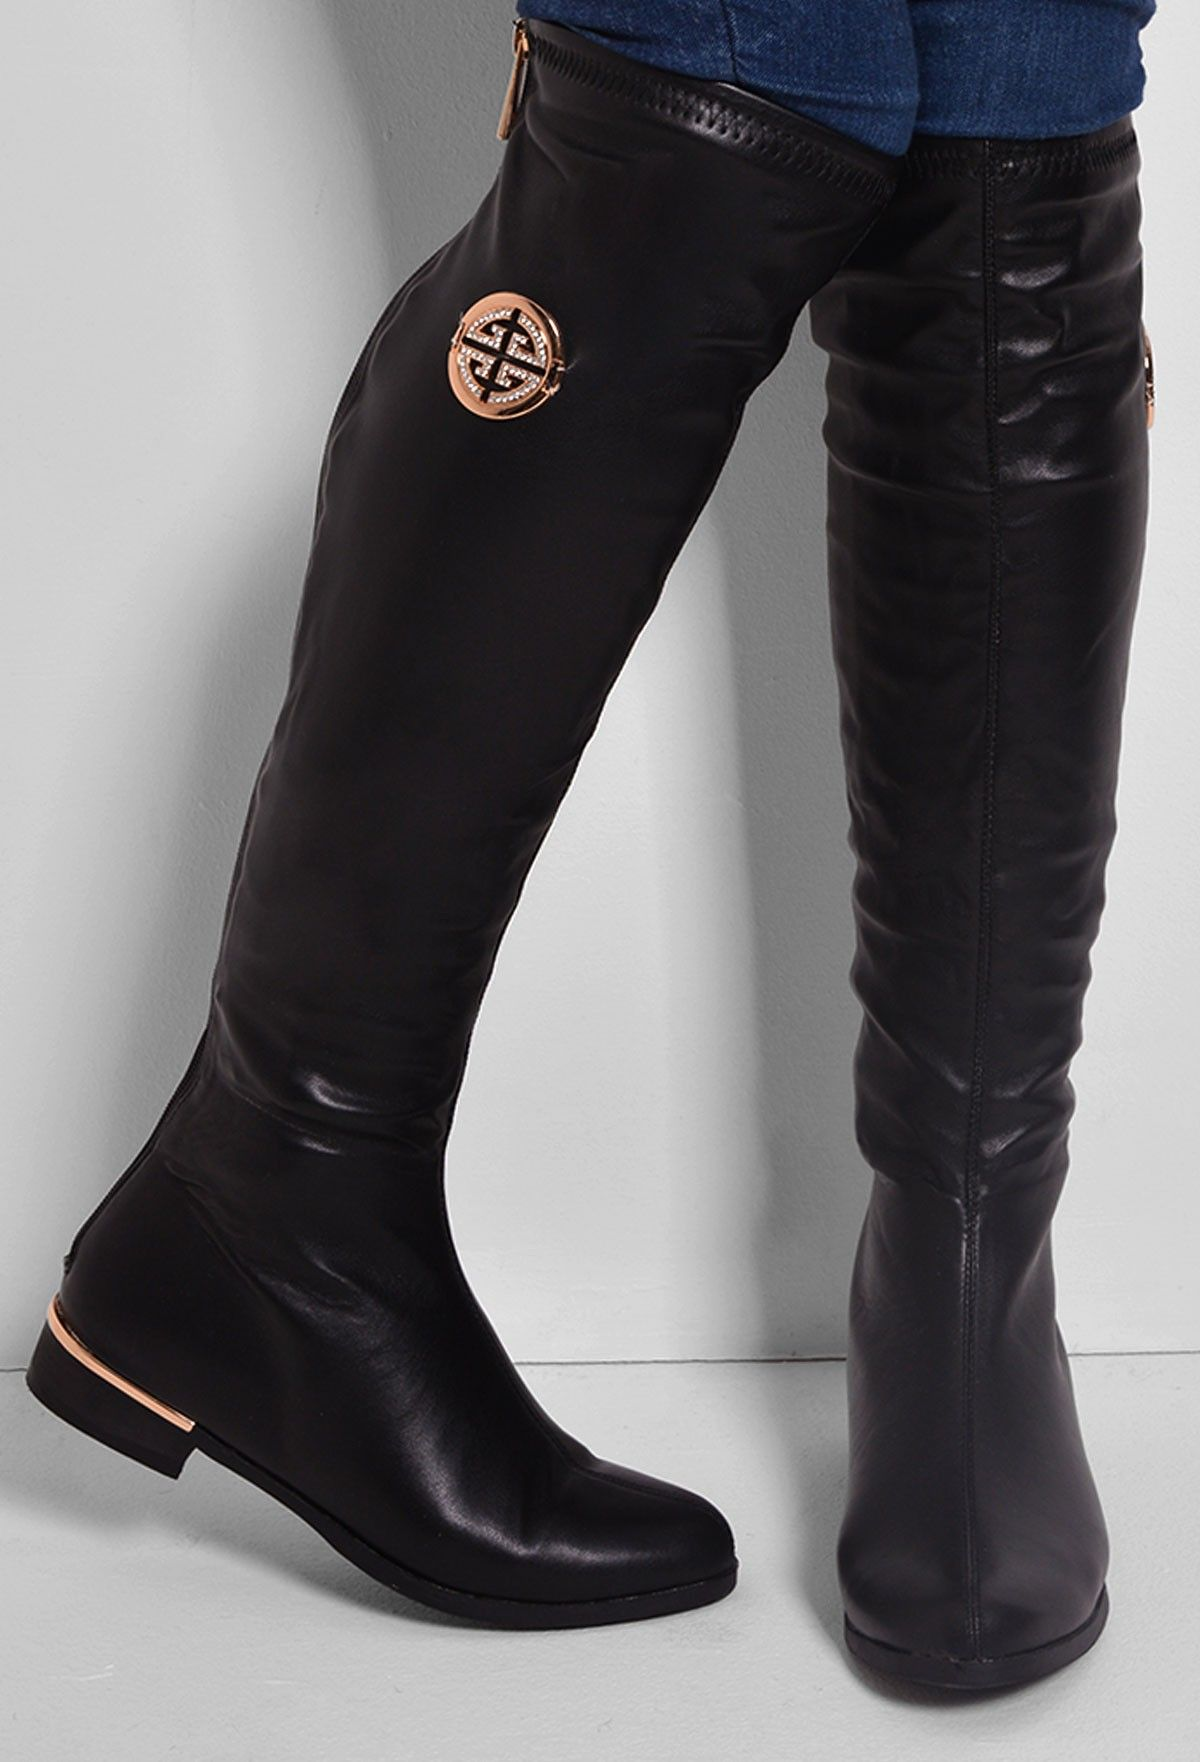 Knee High Boots Black Leather